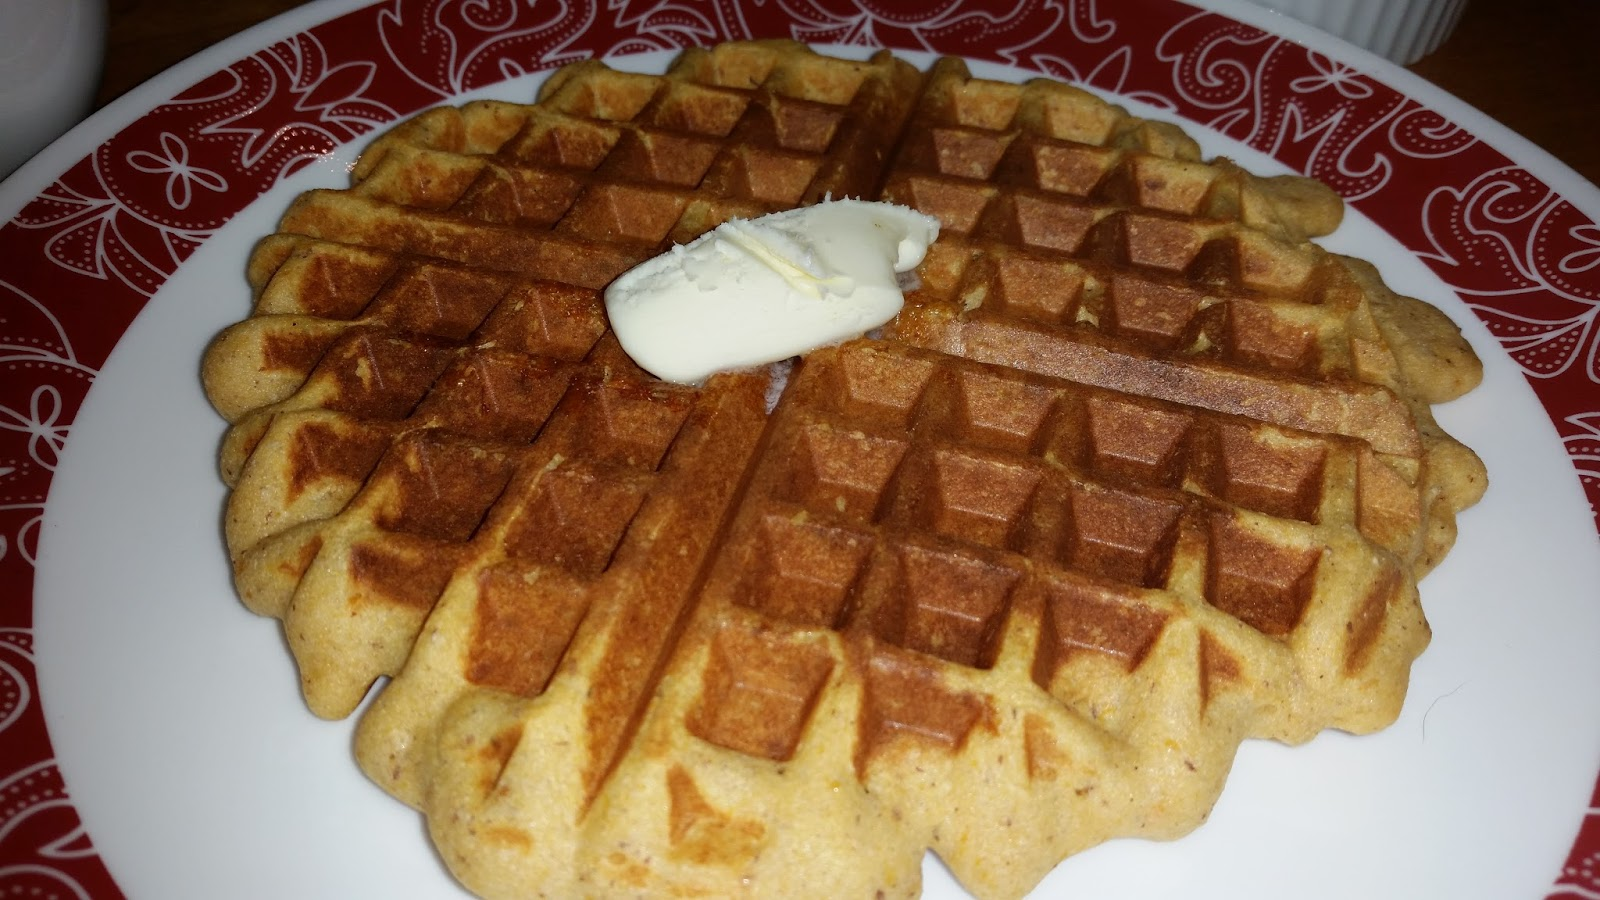 Gluten Free Sweet Potato Waffles (makes 4 waffles)